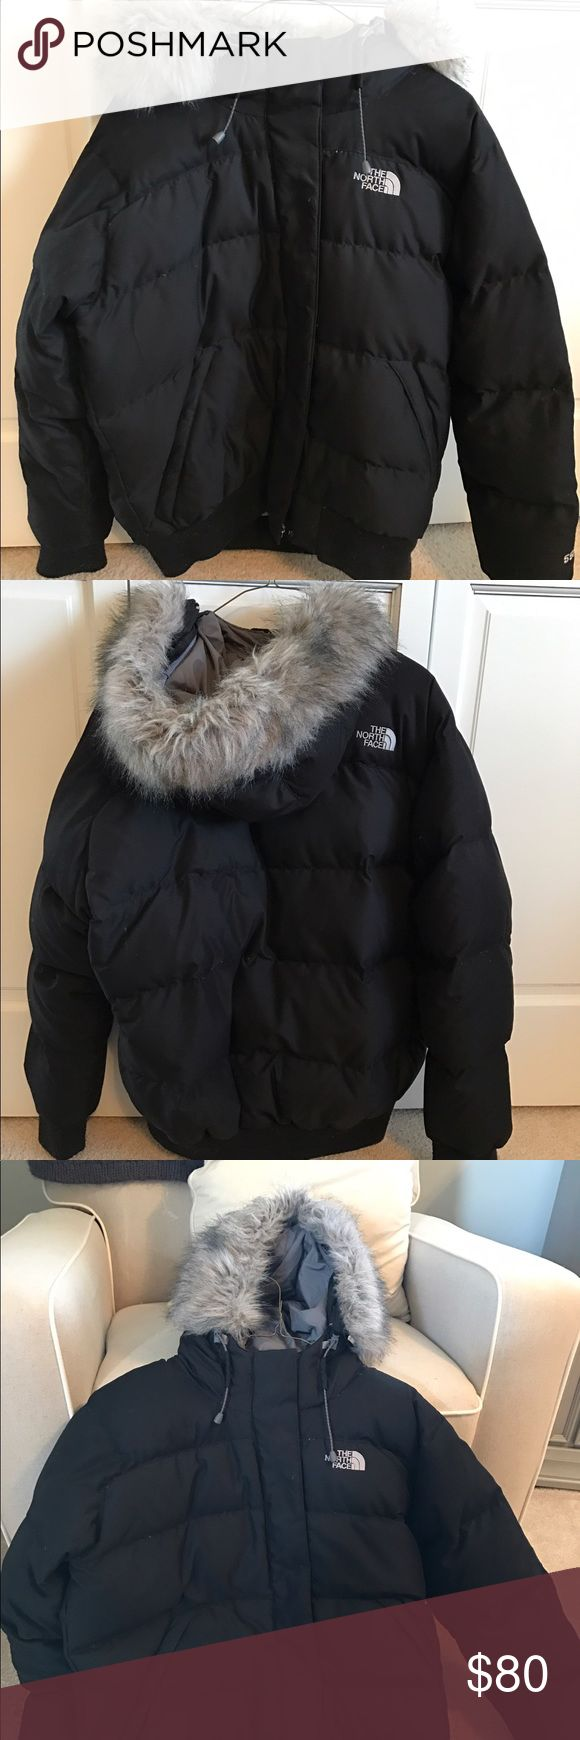 North Face 550 goose-down coat w/ fur lined hood Women's North Face goose-down winter coat with fur lined hood. EXCELLENT condition, like brand new. Size Large. Black exterior with gray fur lined hood. Puffy and soft. The North Face Jackets & Coats Puffers